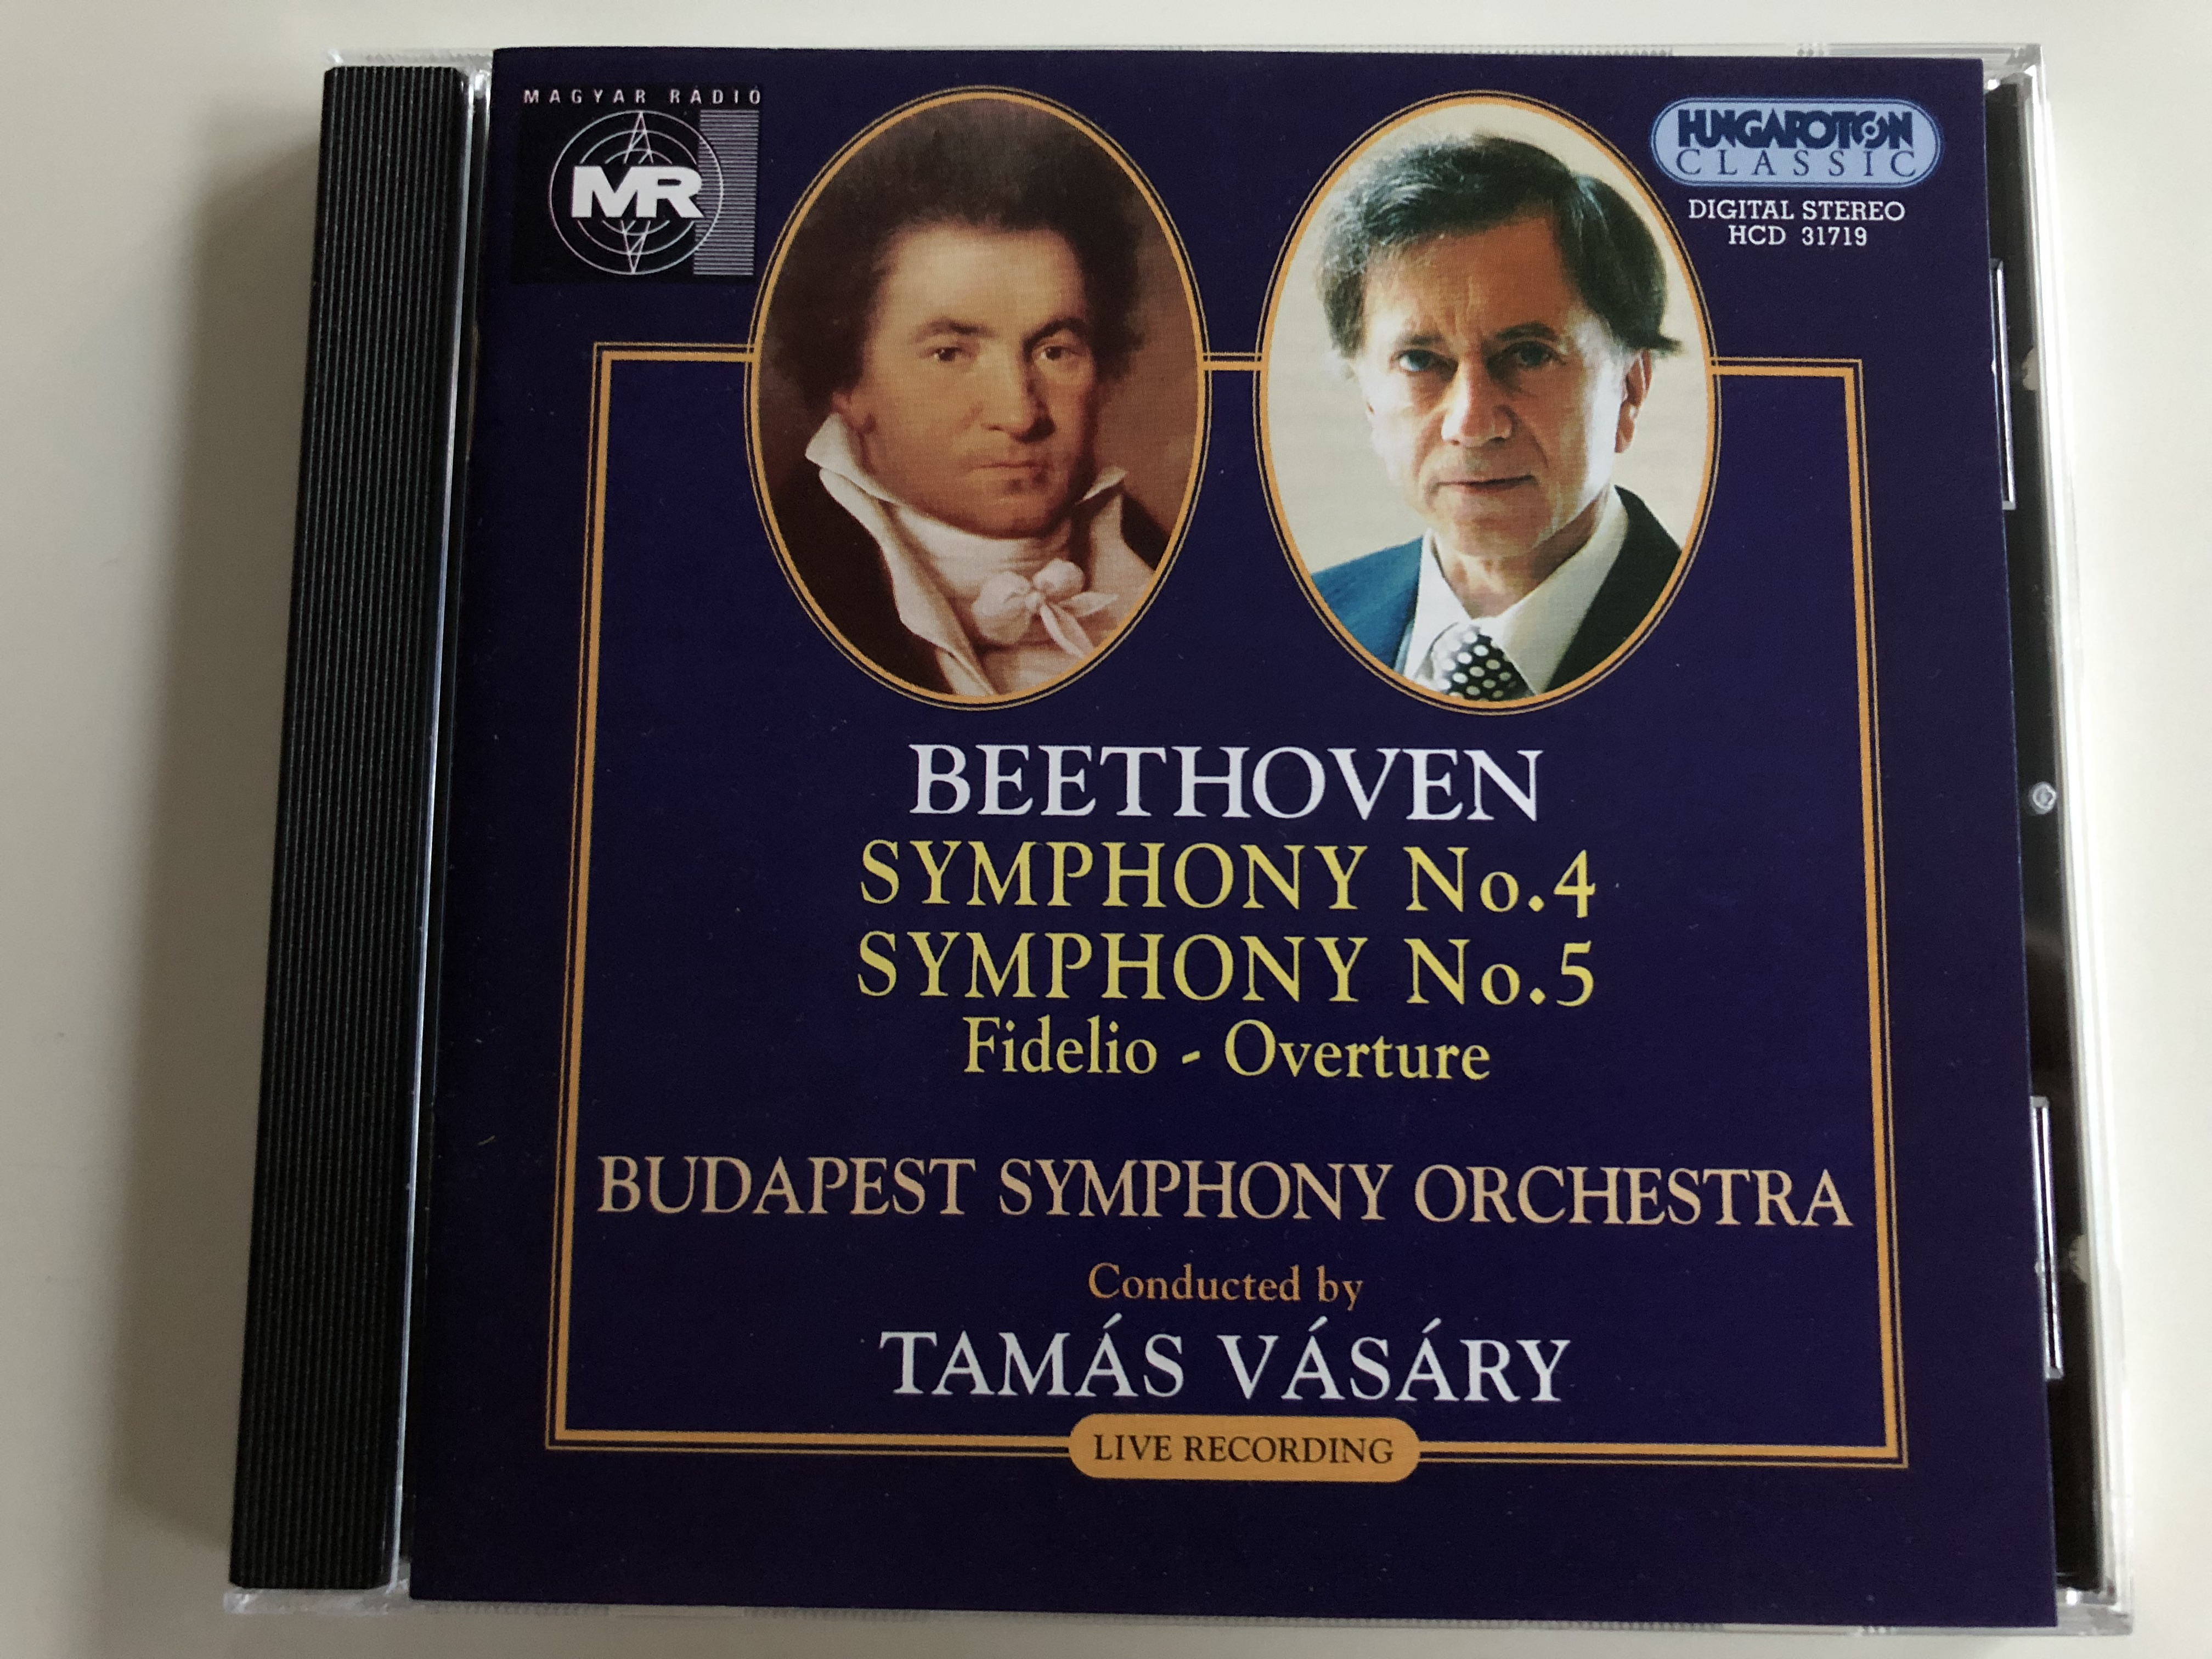 beethoven-symphony-no.-4-no.-5-fidelio-overture-budapest-symphony-orchestra-conducted-by-tam-s-v-s-ry-live-recording-hungaroton-classic-audio-cd-1997-hcd-31719-1-.jpg